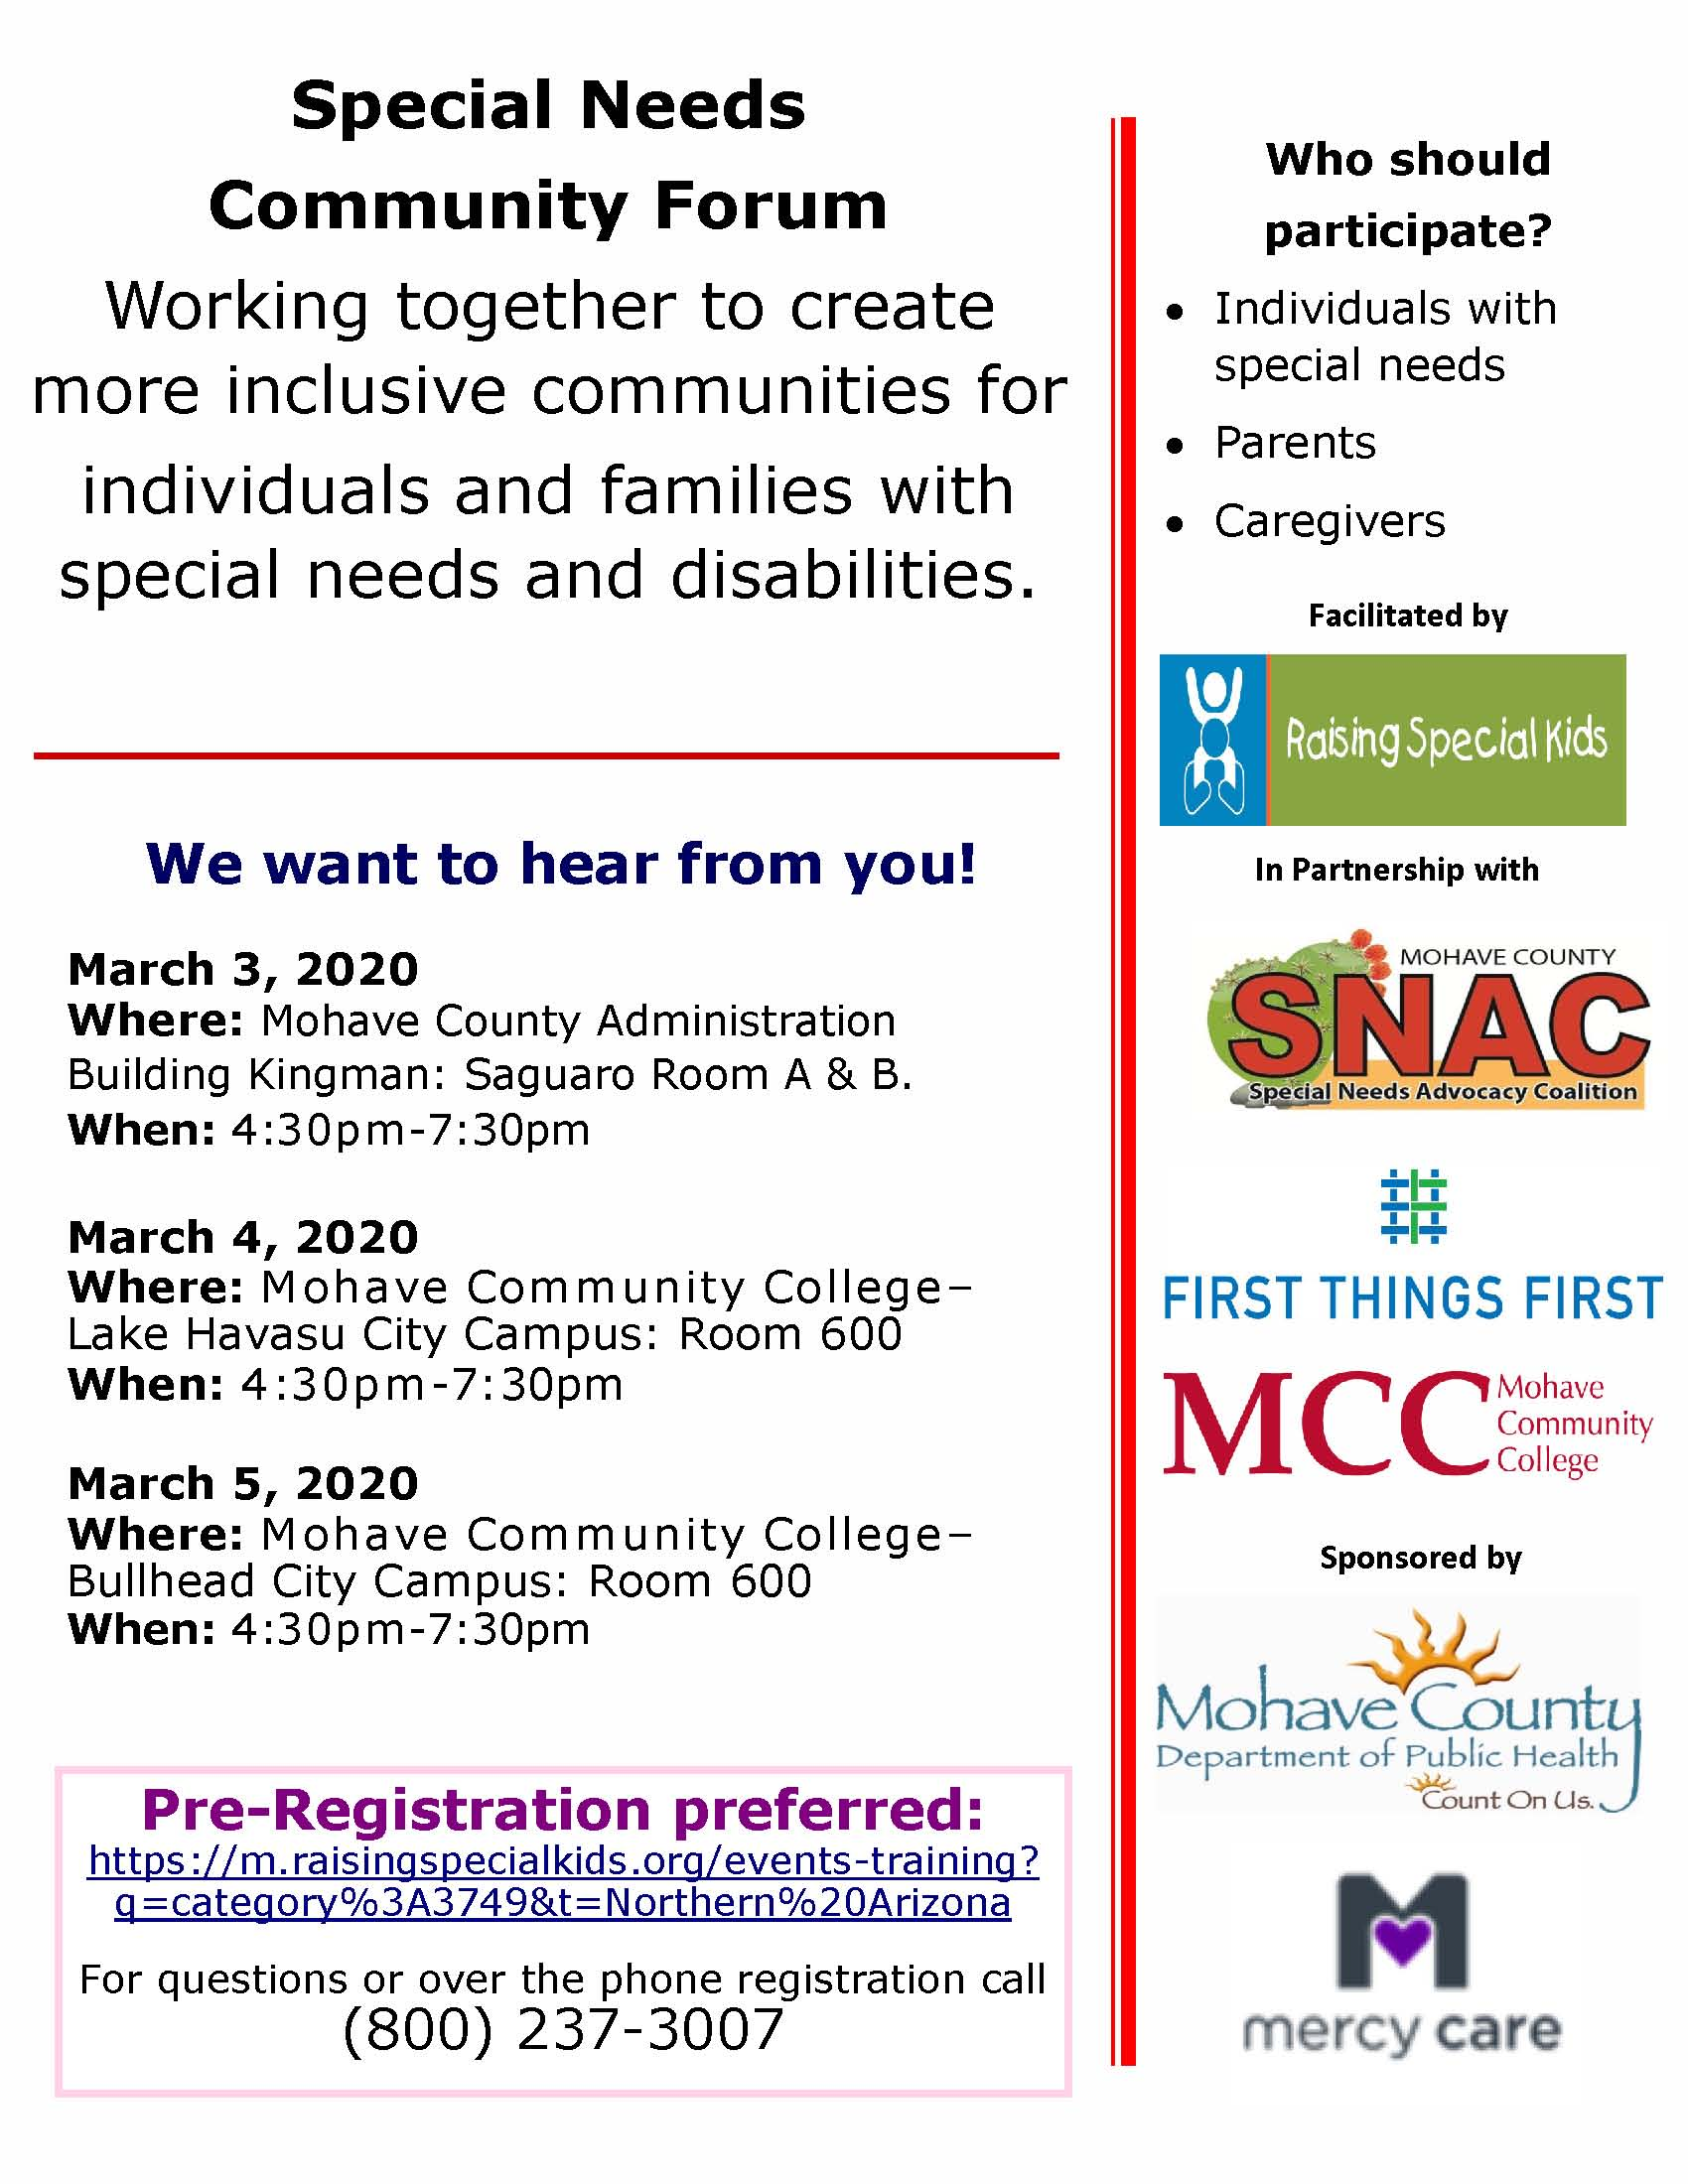 Special Needs Community Forum